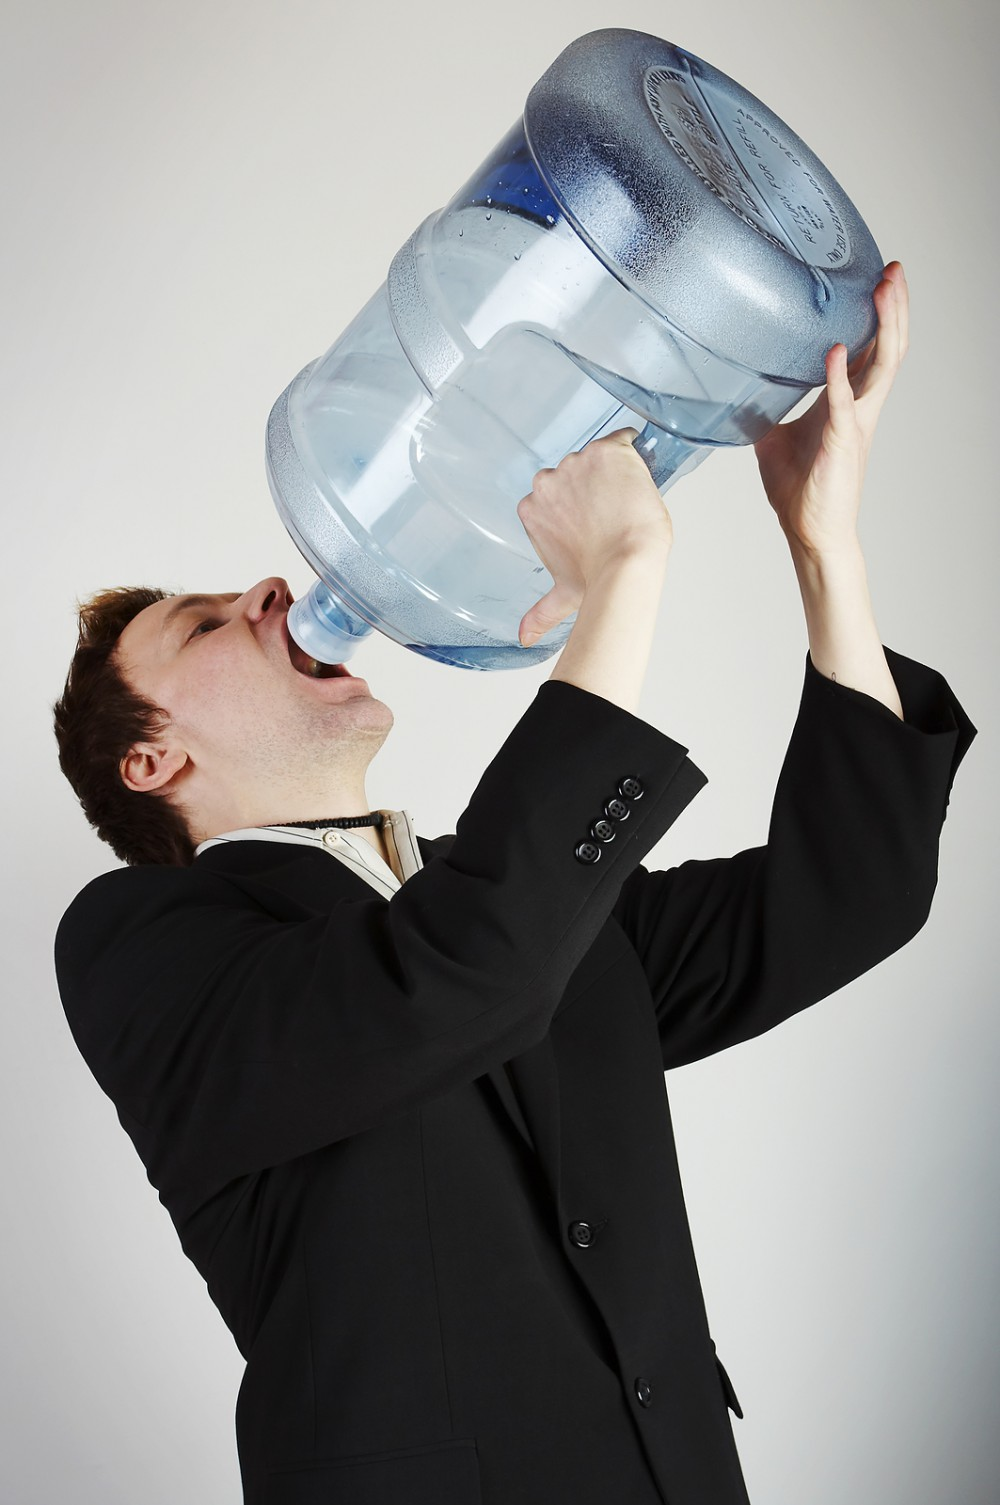 bigstock-Man-With-Huge-Water-Bottle-1999993-1000x1505